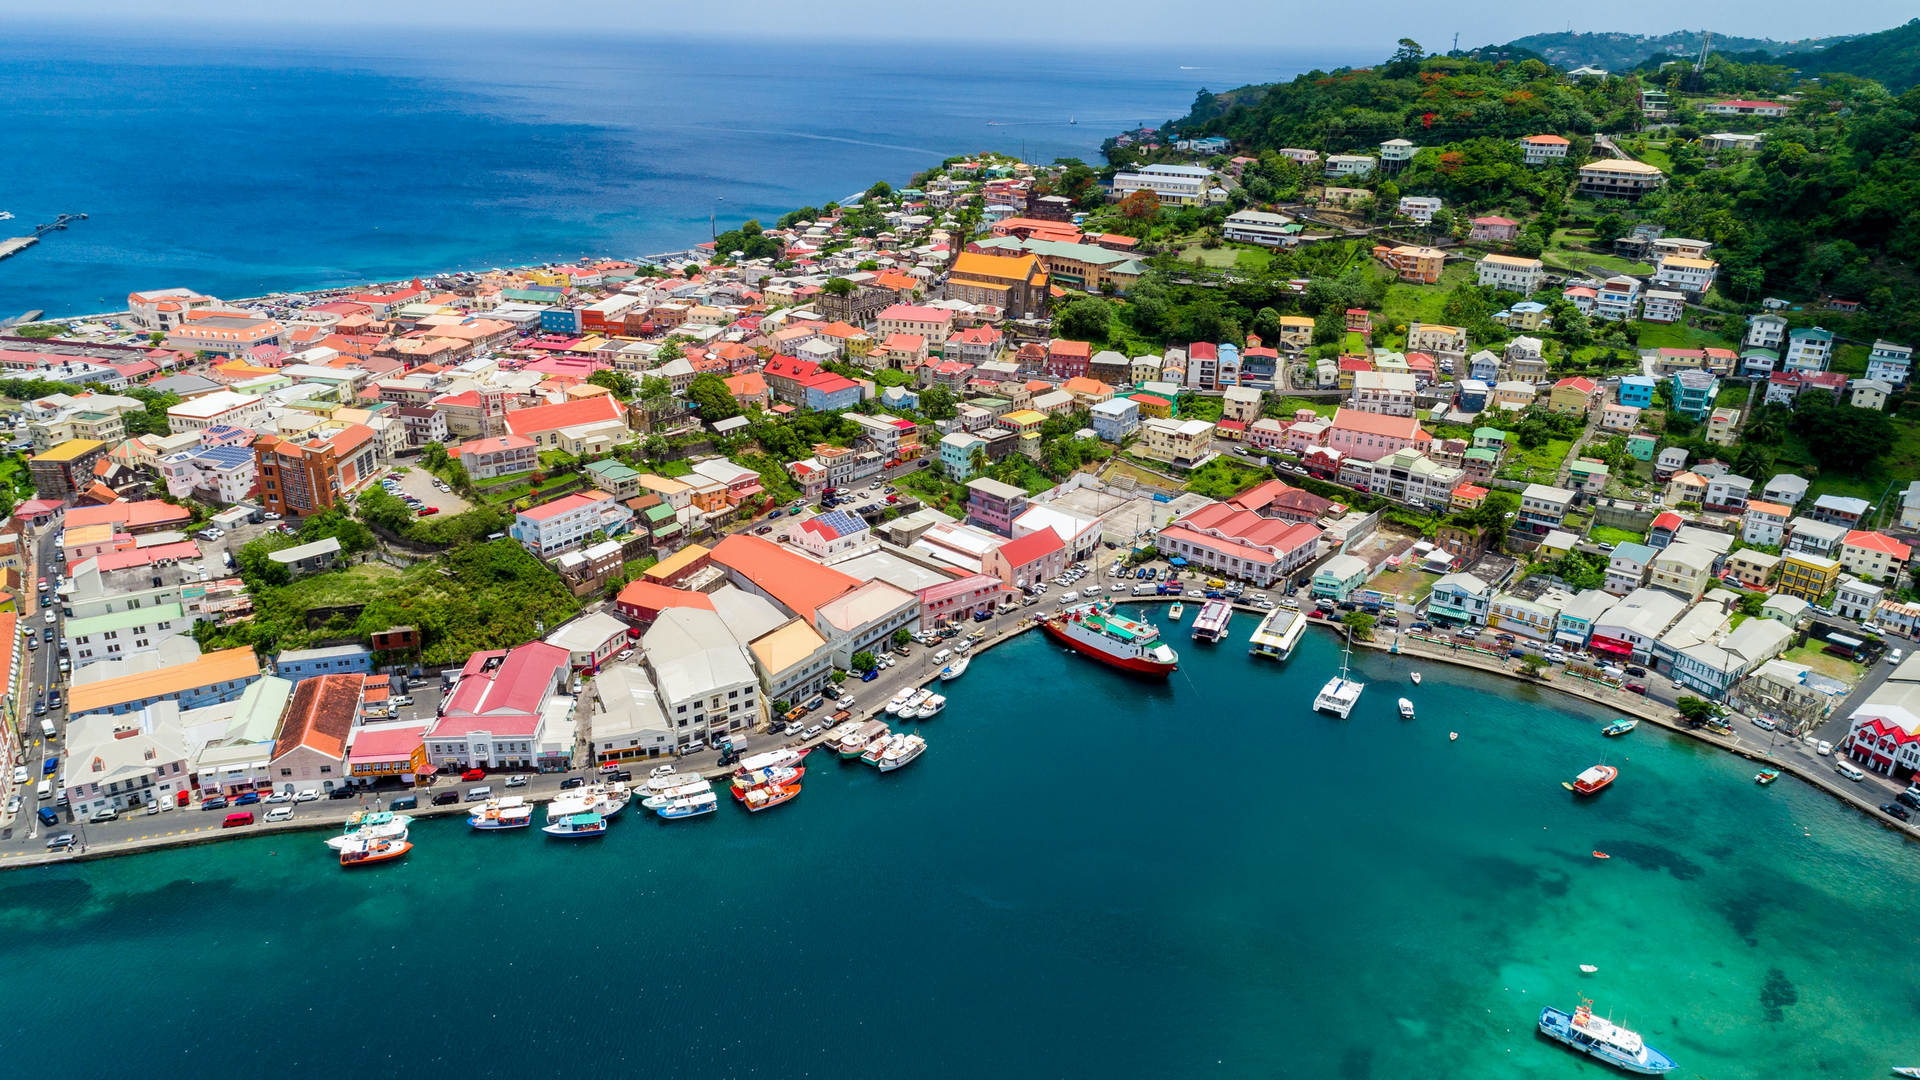 A view in Grenada